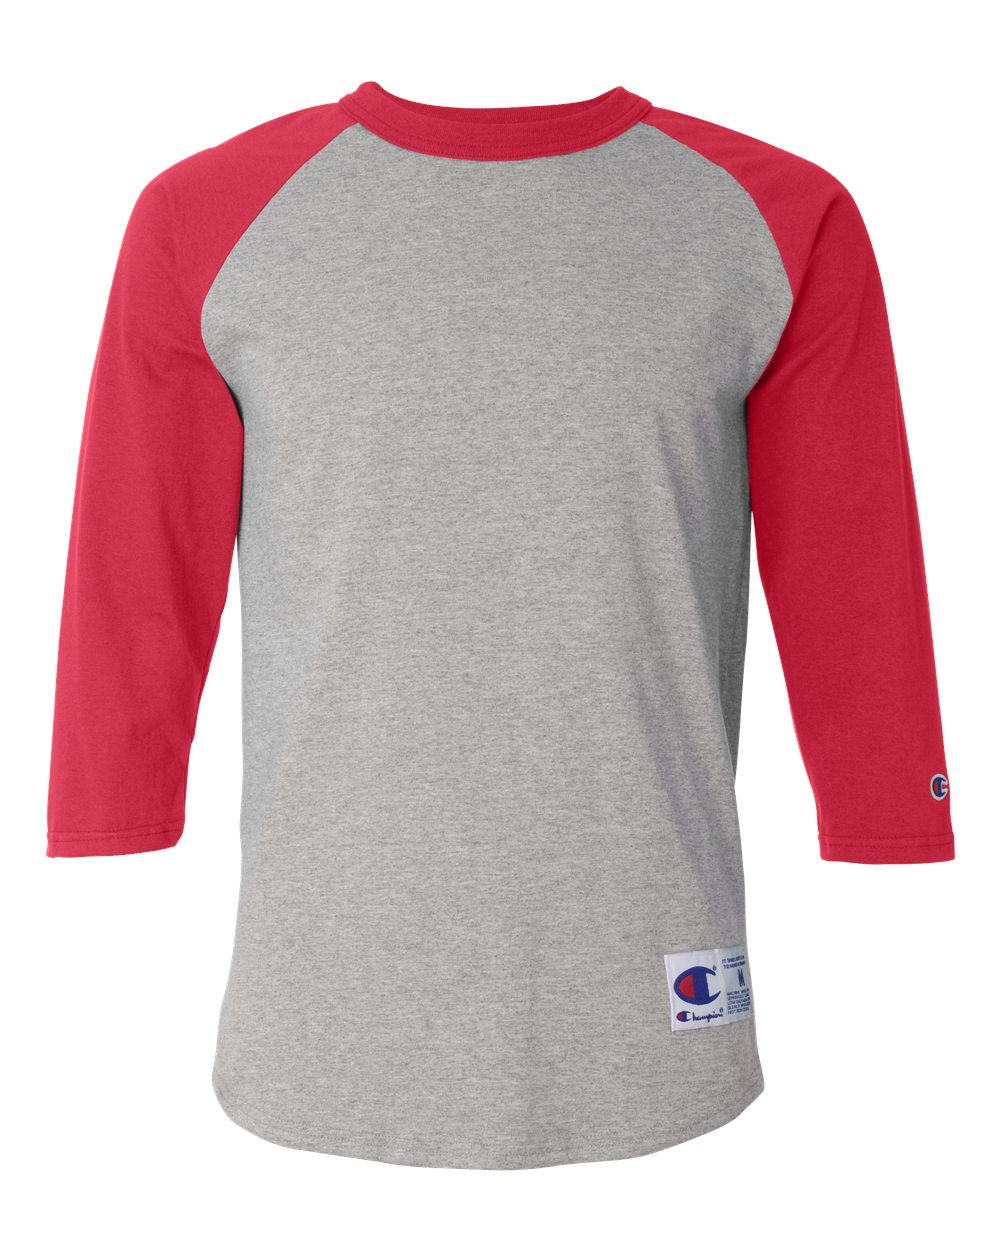 34e4bf17acb597 Champion T137 - Raglan Baseball T-Shirt | Needen USA